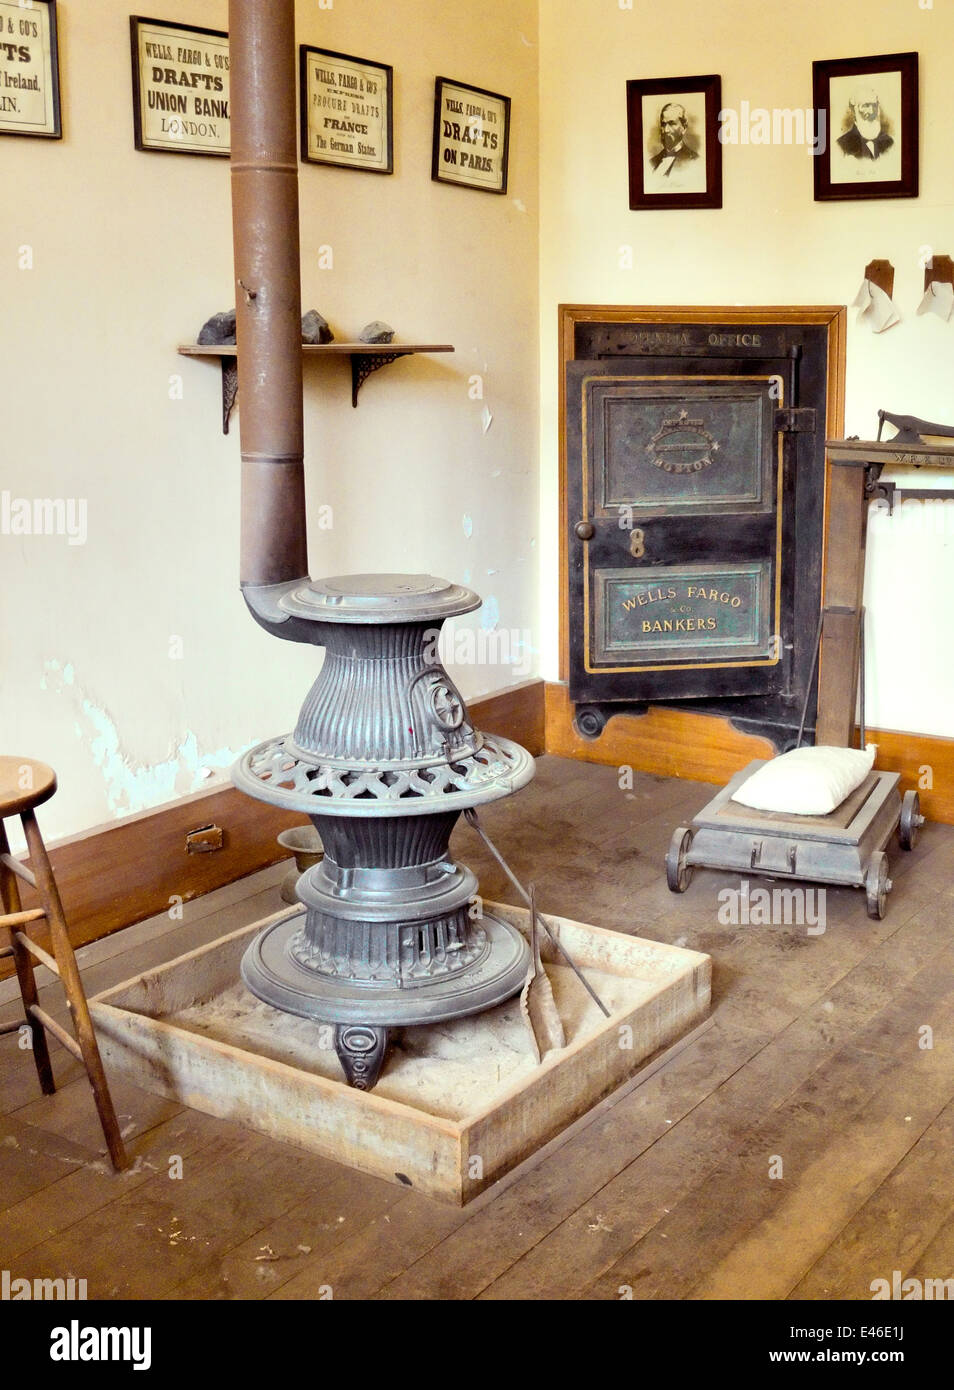 An ornate potbelly stove - Stock Image